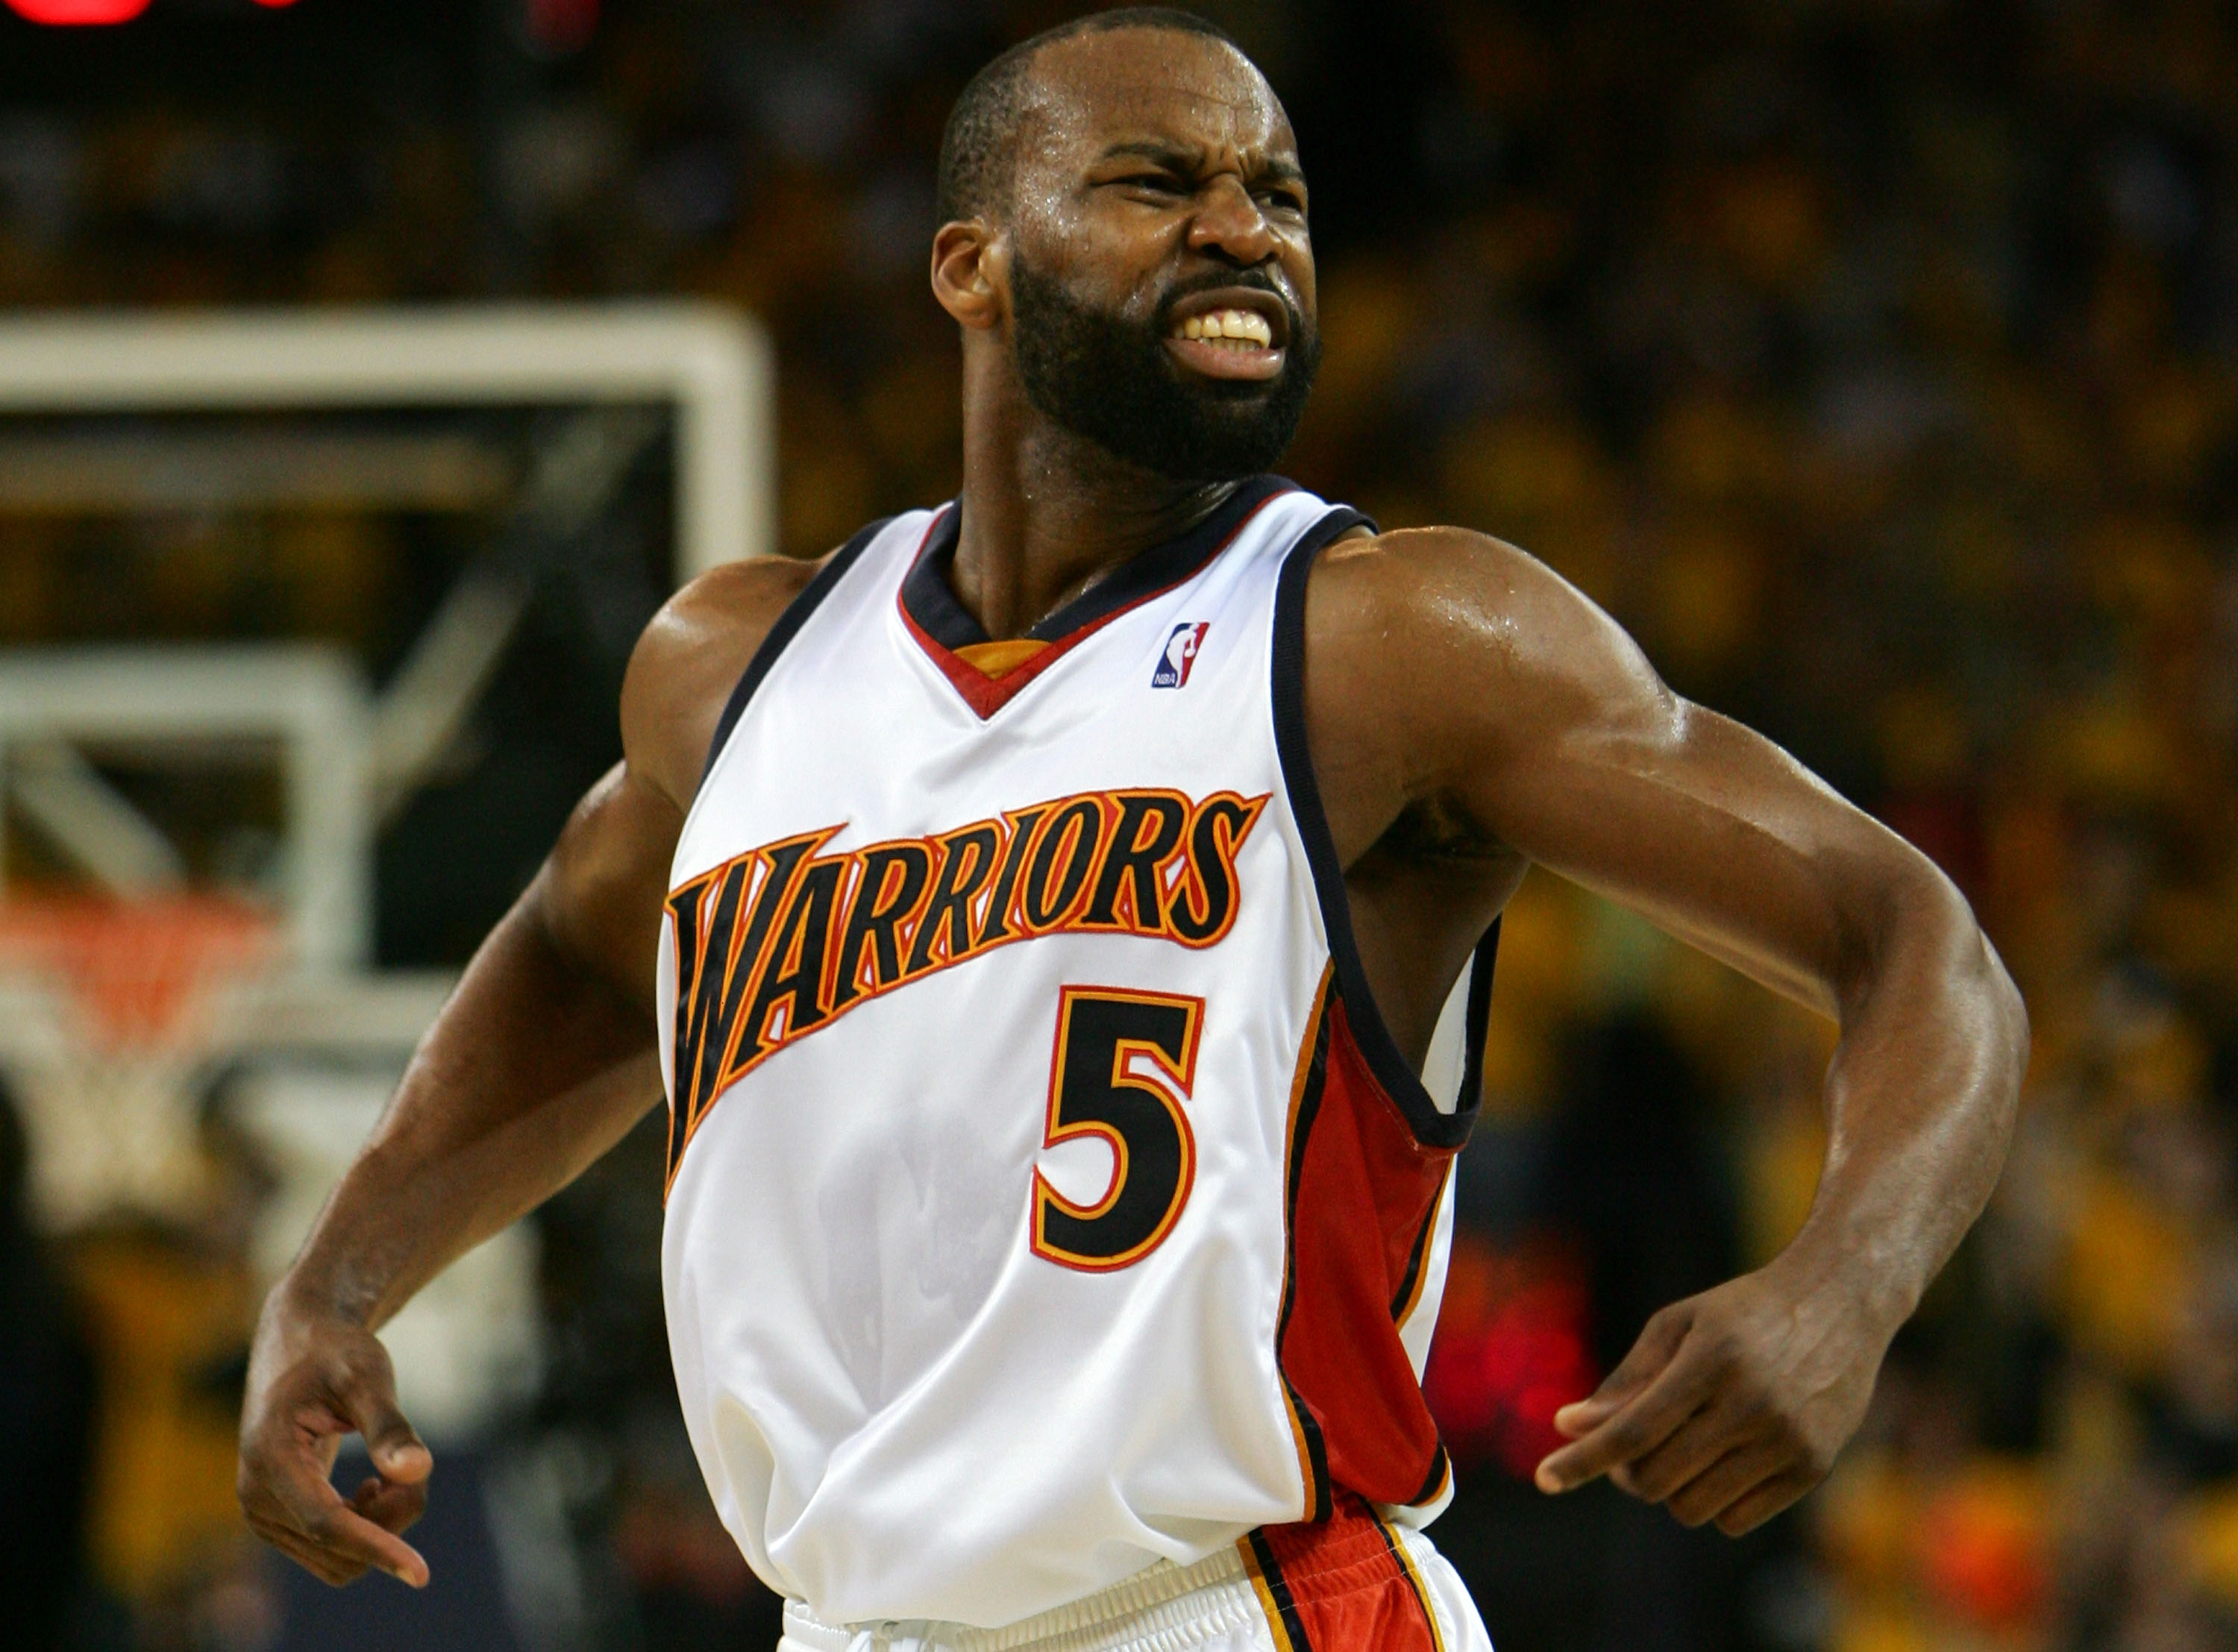 OAKLAND, CA - MAY 03:  Baron Davis #5 of the Golden State Warriors celebrates against the Dallas Mavericks in Game 6 of the Western Conference Quarterfinals during the 2007 NBA Playoffs on May 3, 2007 at Oracle Arena in Oakland, California. NOTE TO USER: User expressly acknowledges and agrees that, by downloading and or using this photograph, User is consenting to the terms and conditions of the Getty Images License Agreement.  (Photo by Jed Jacobsohn/Getty Images)